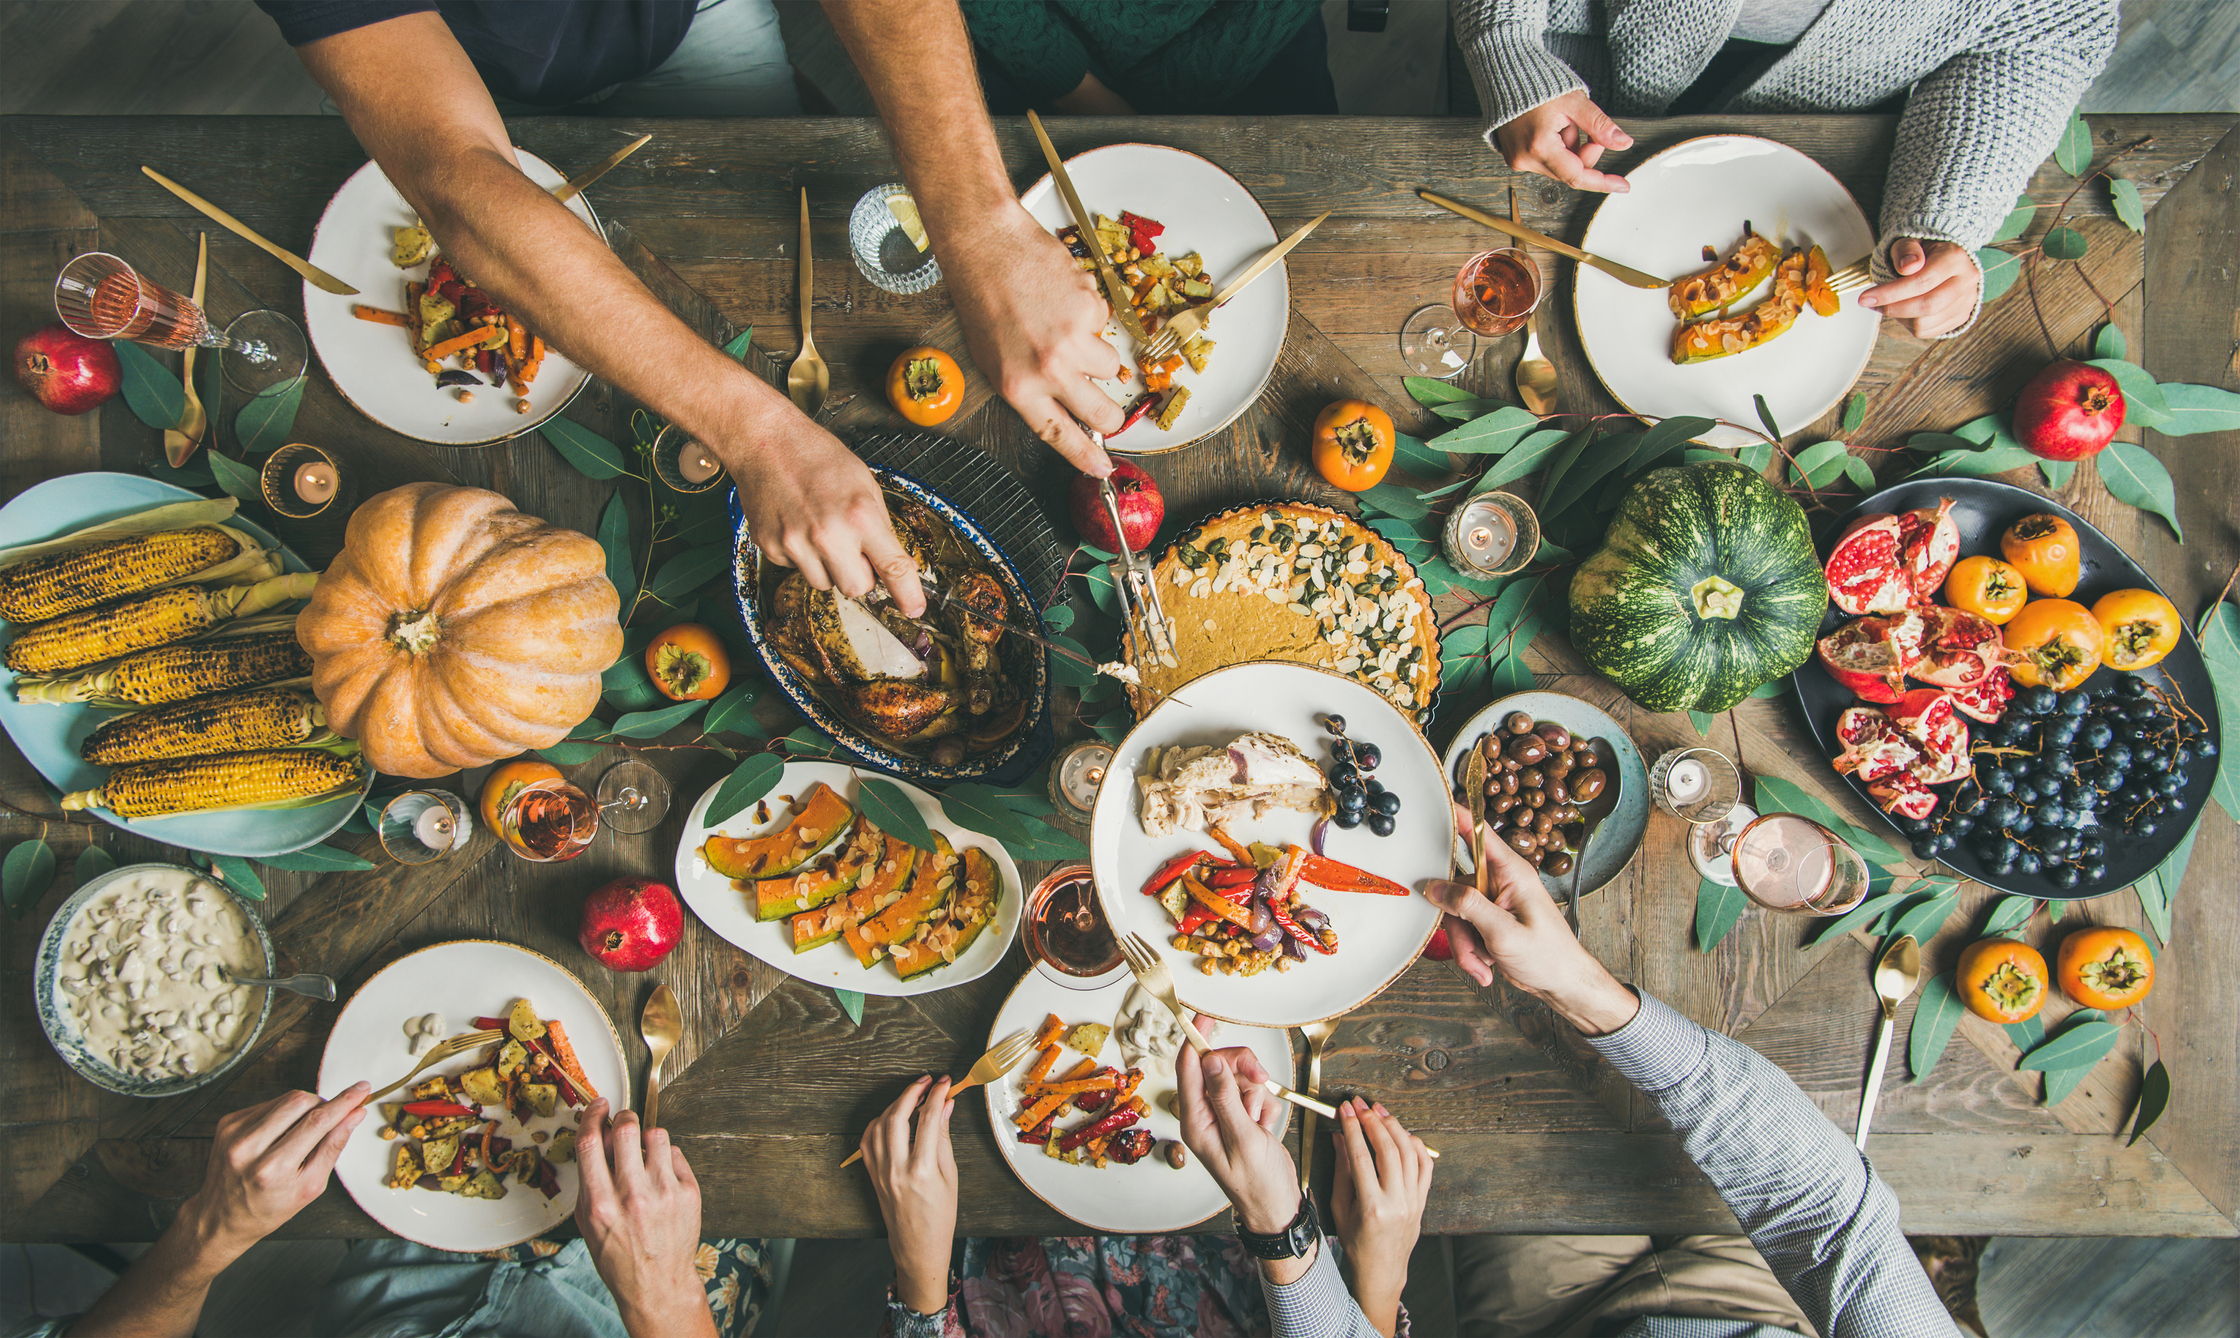 A group of people eating a vegan, plant-based Thanksgiving meal.